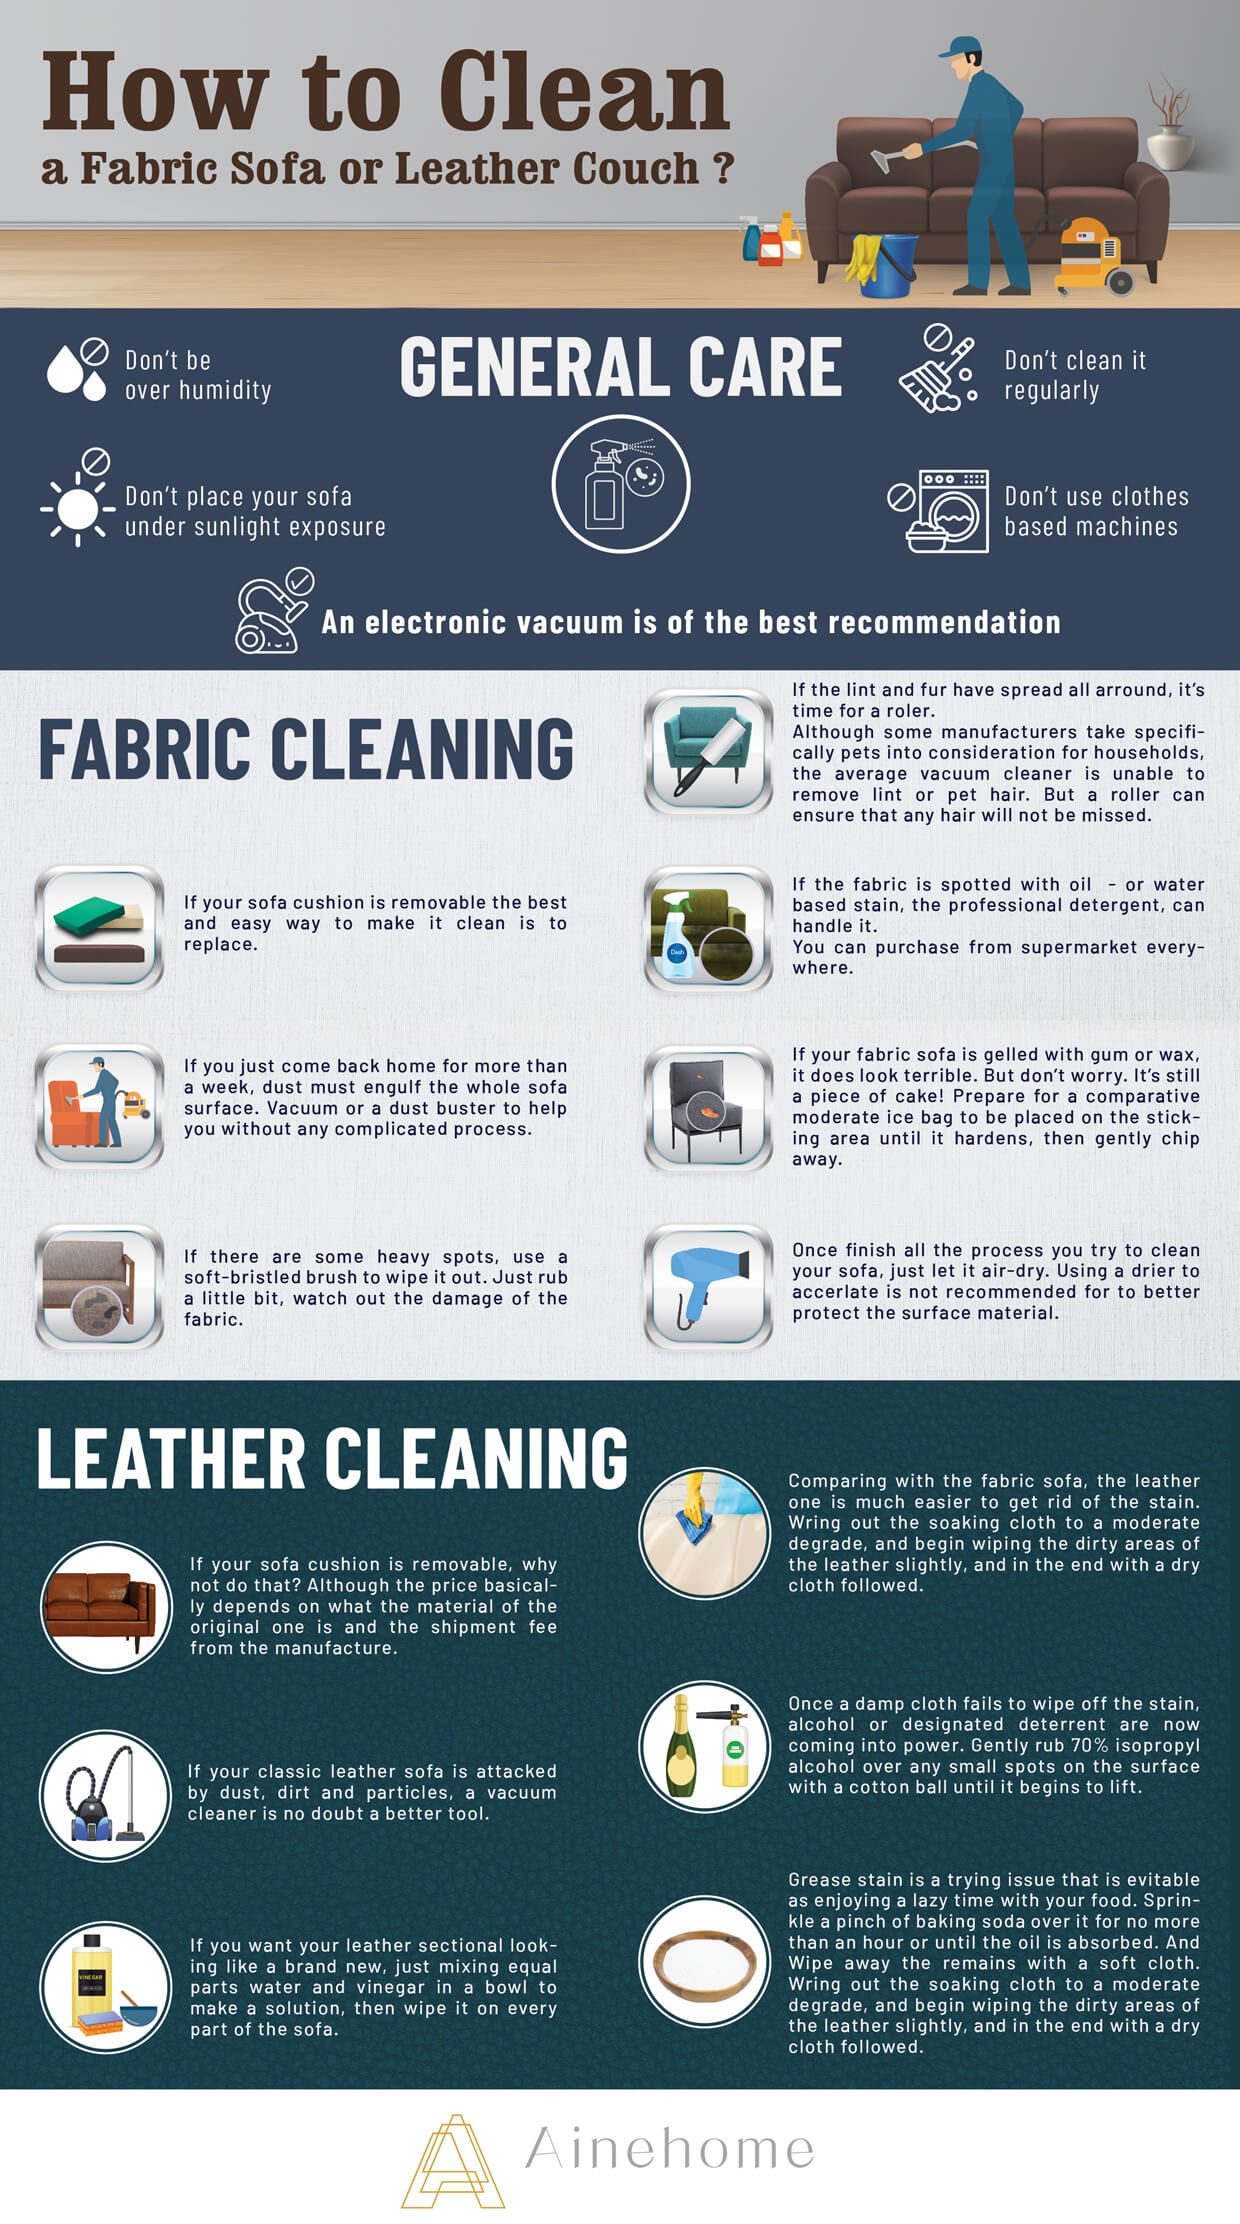 How To Clean A Fabric Sofa Or Leather Couch-infographic-plaza